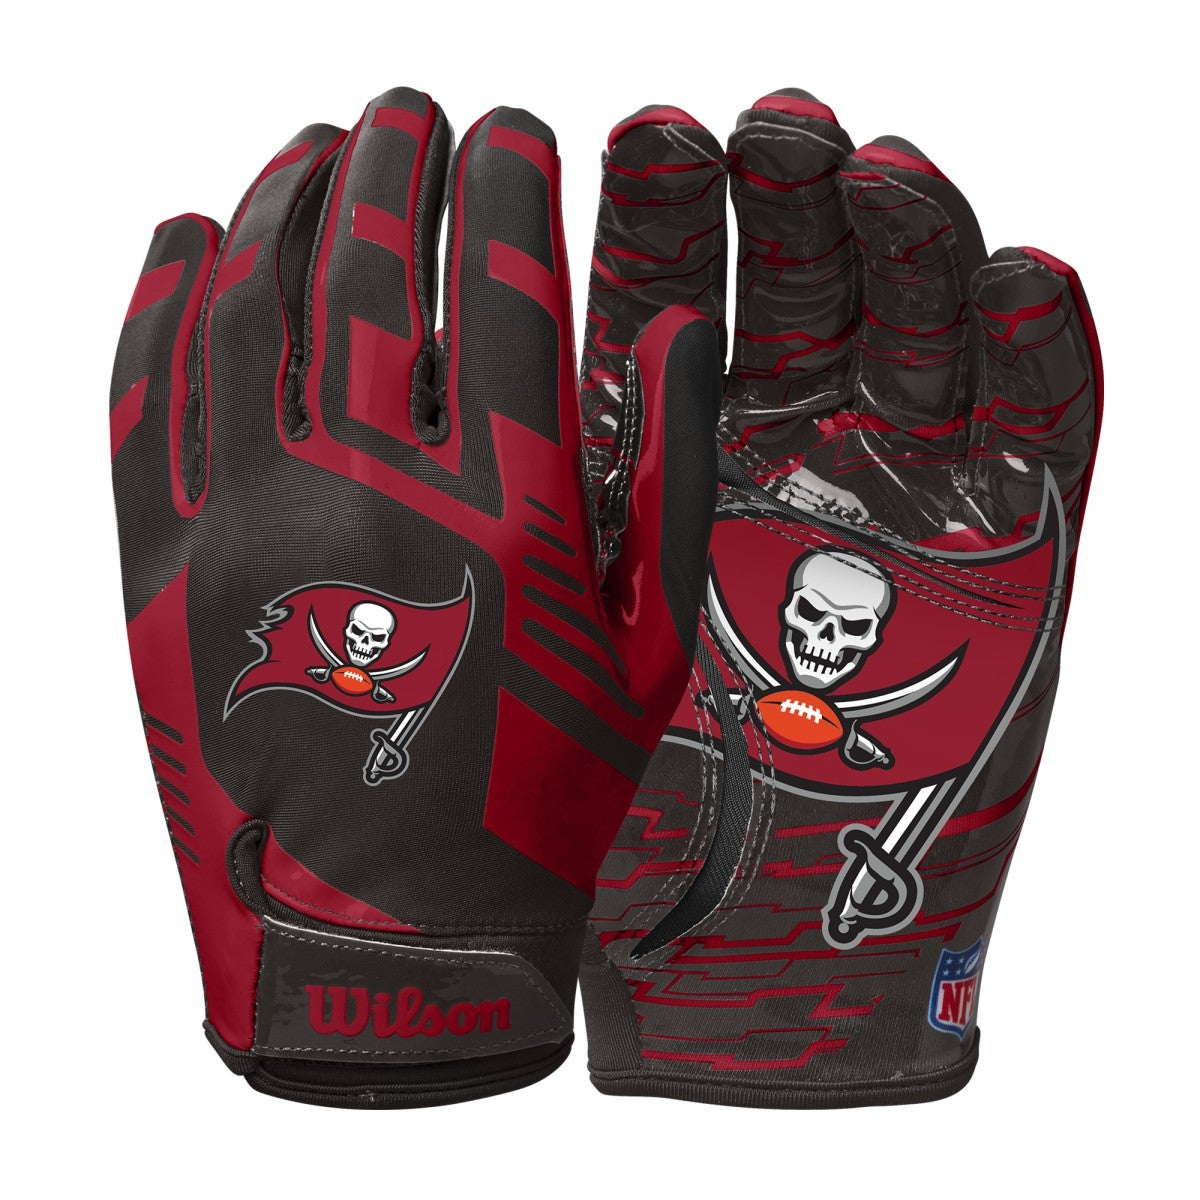 NFL Stretch Fit Receivers Gloves - Tampa Bay Buccaneers